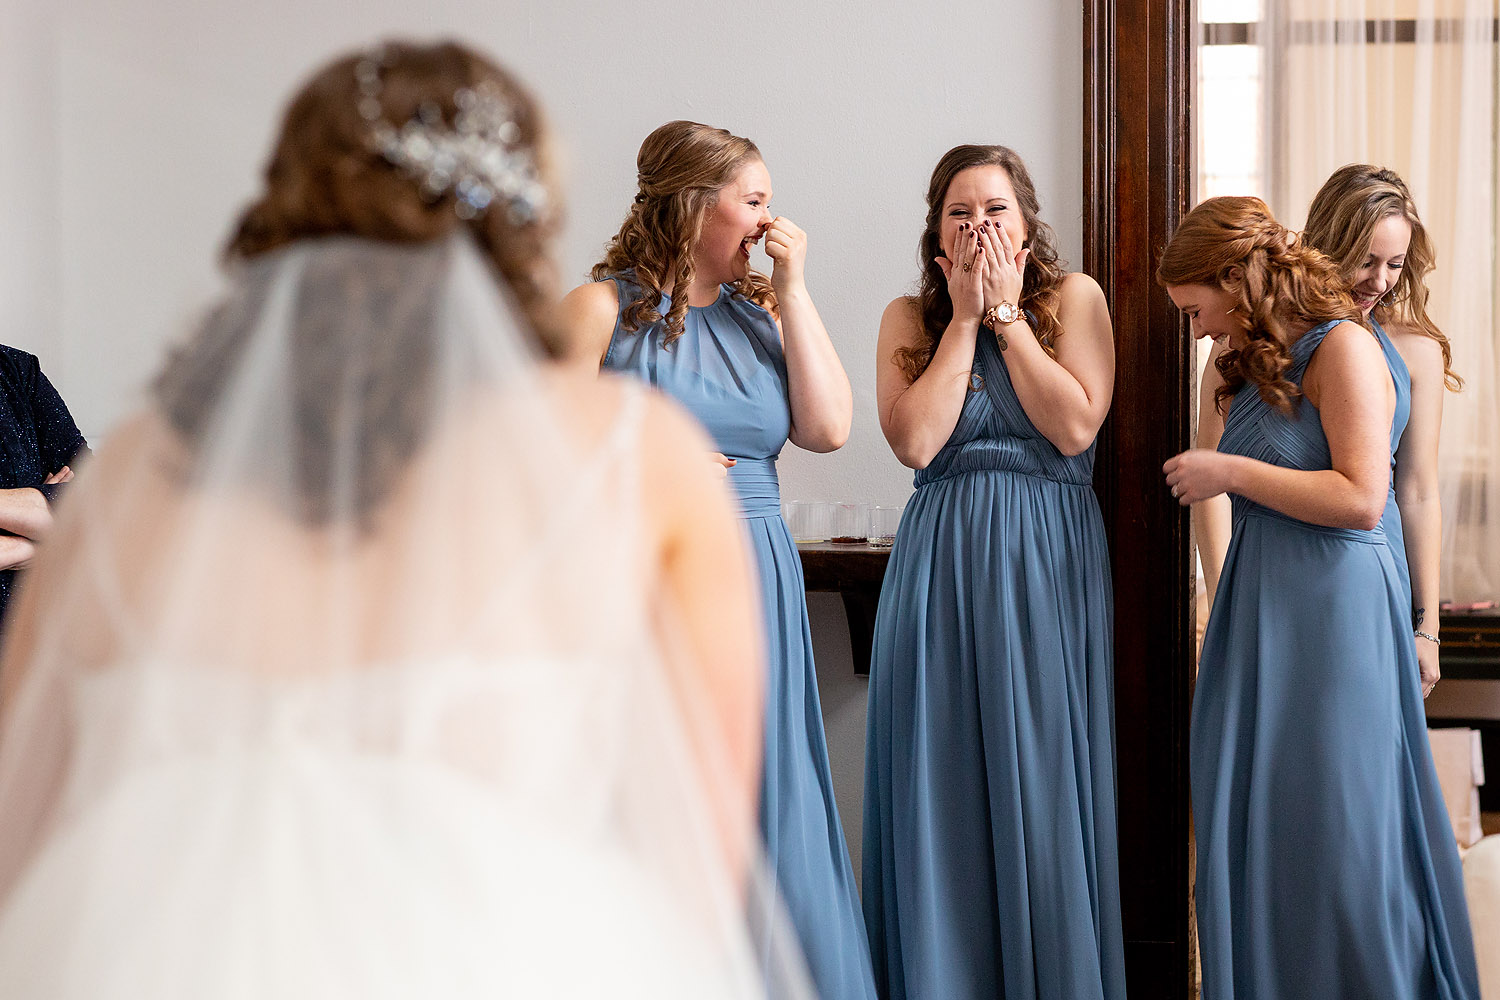 022first-look-with-bridesmaids.jpg